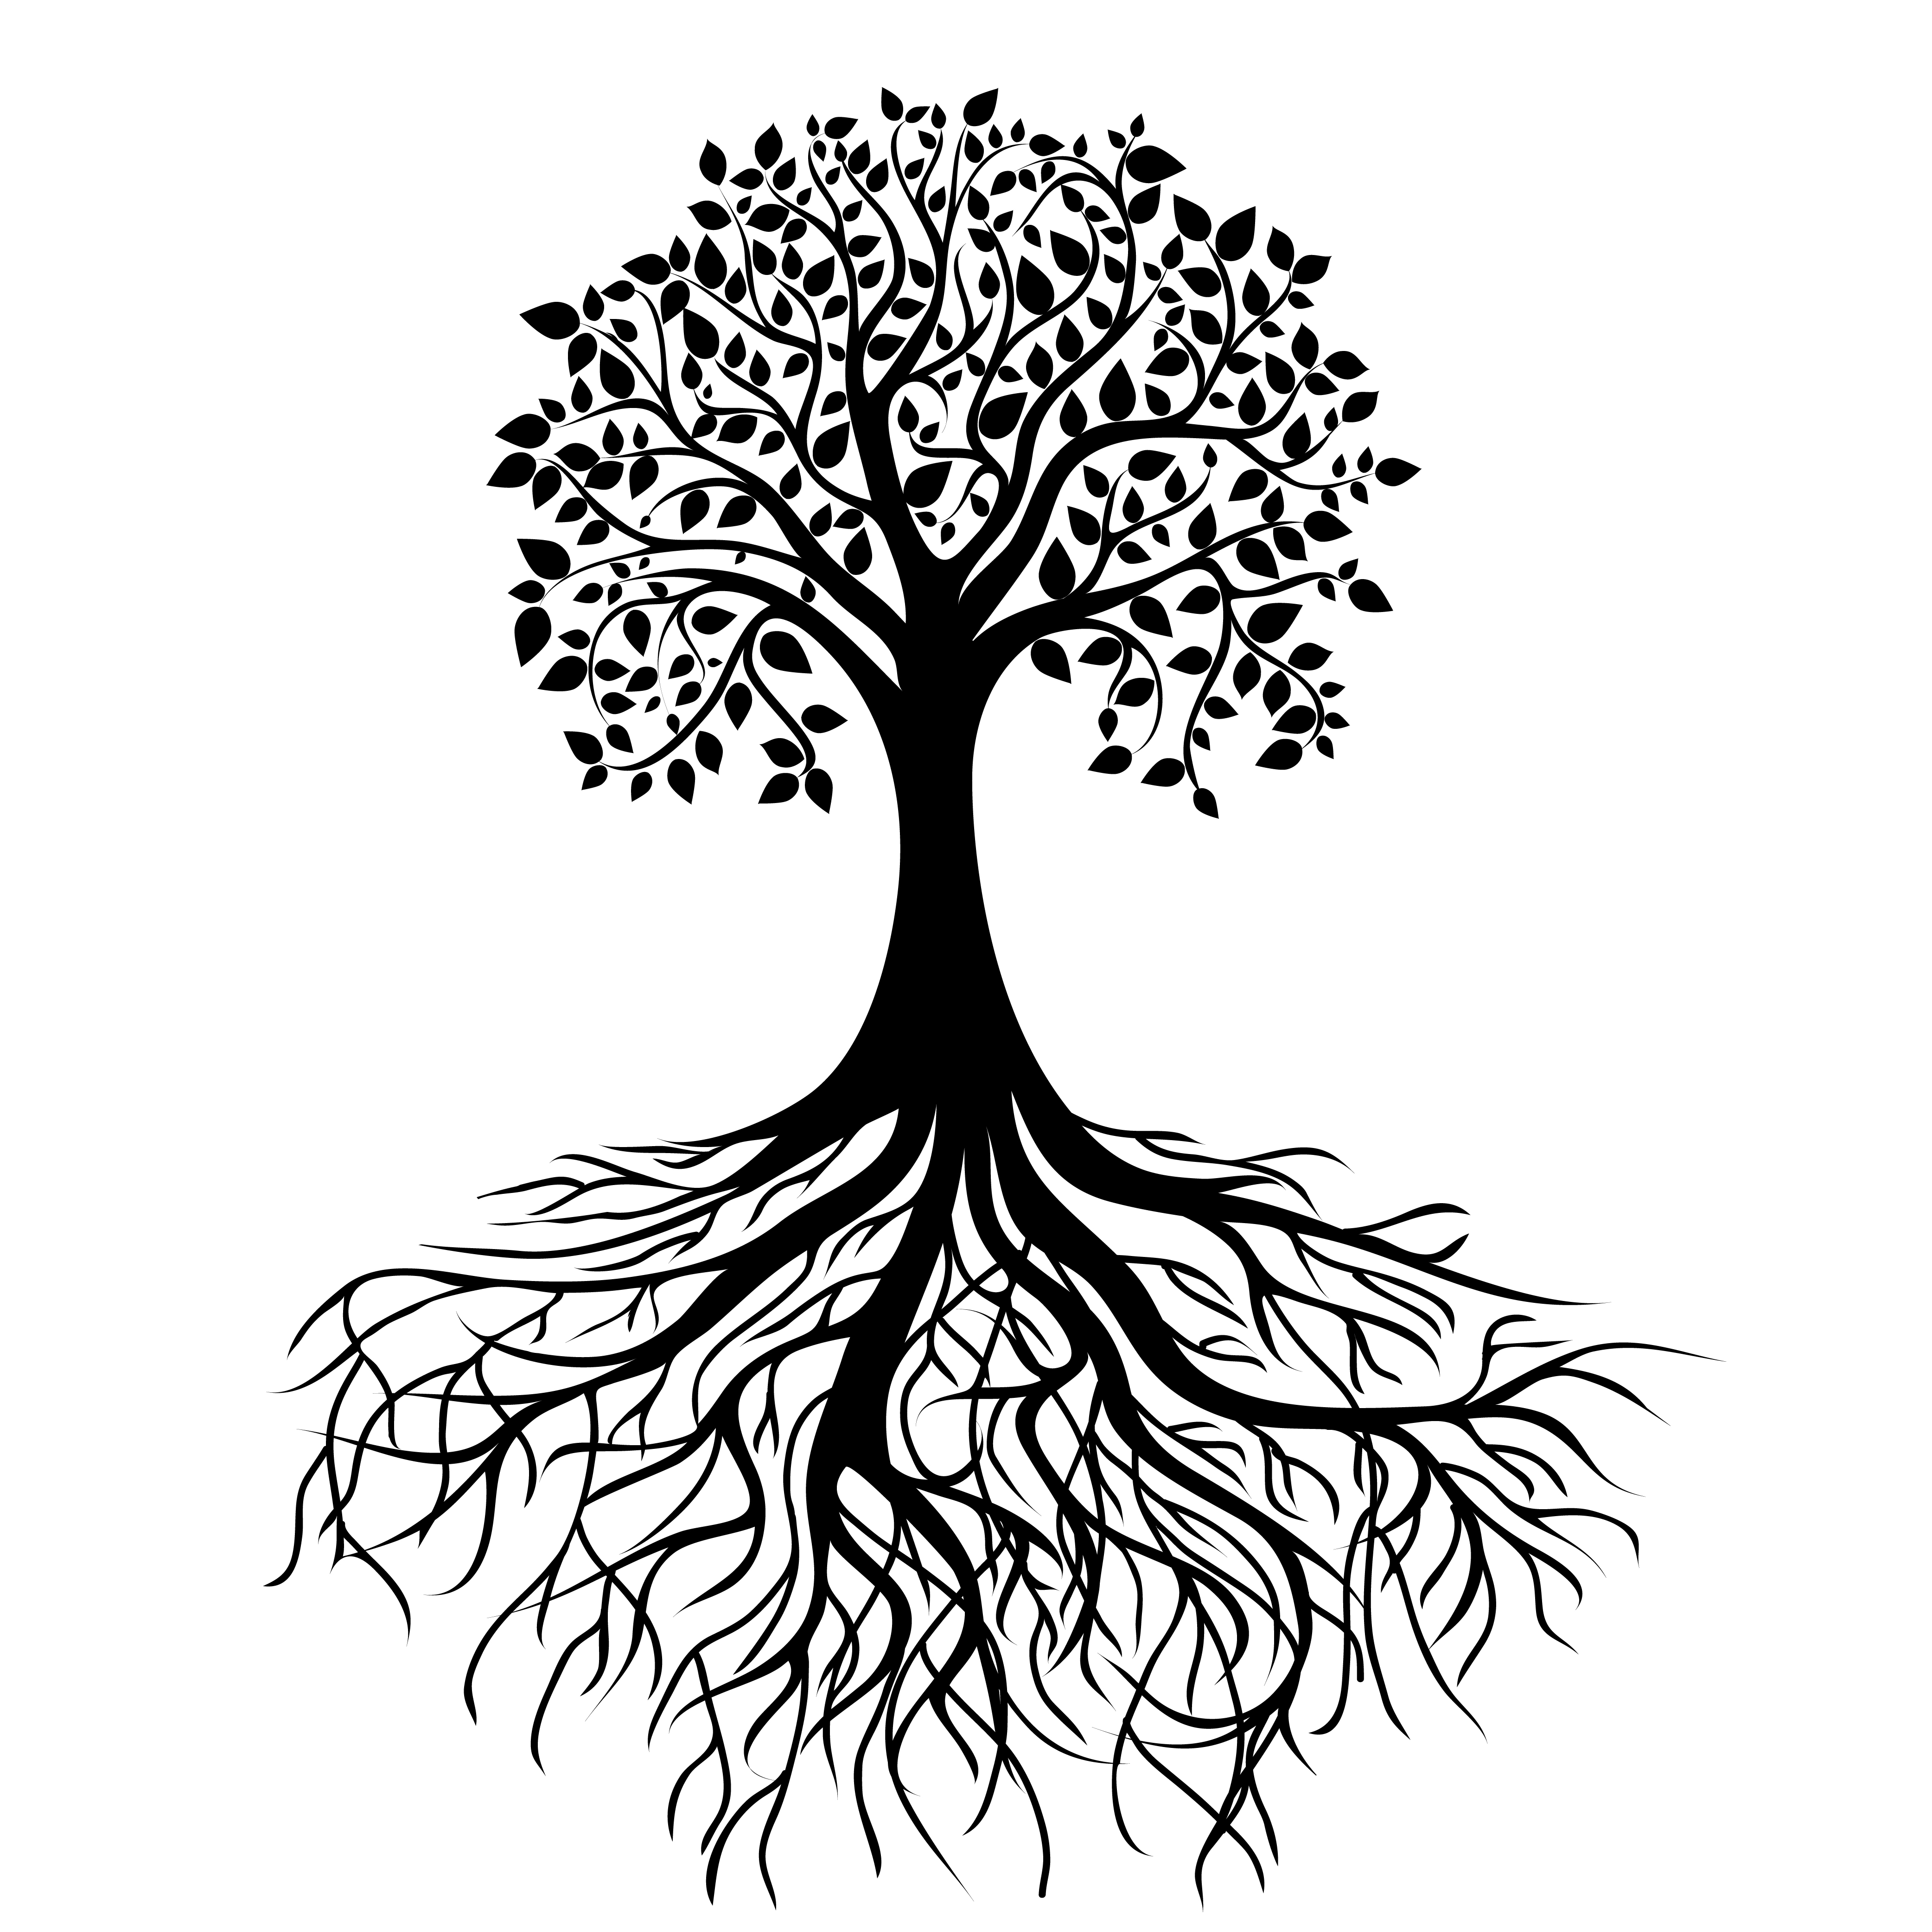 4167x4167 Tree Roots Png The Writing Tree Old House Tree